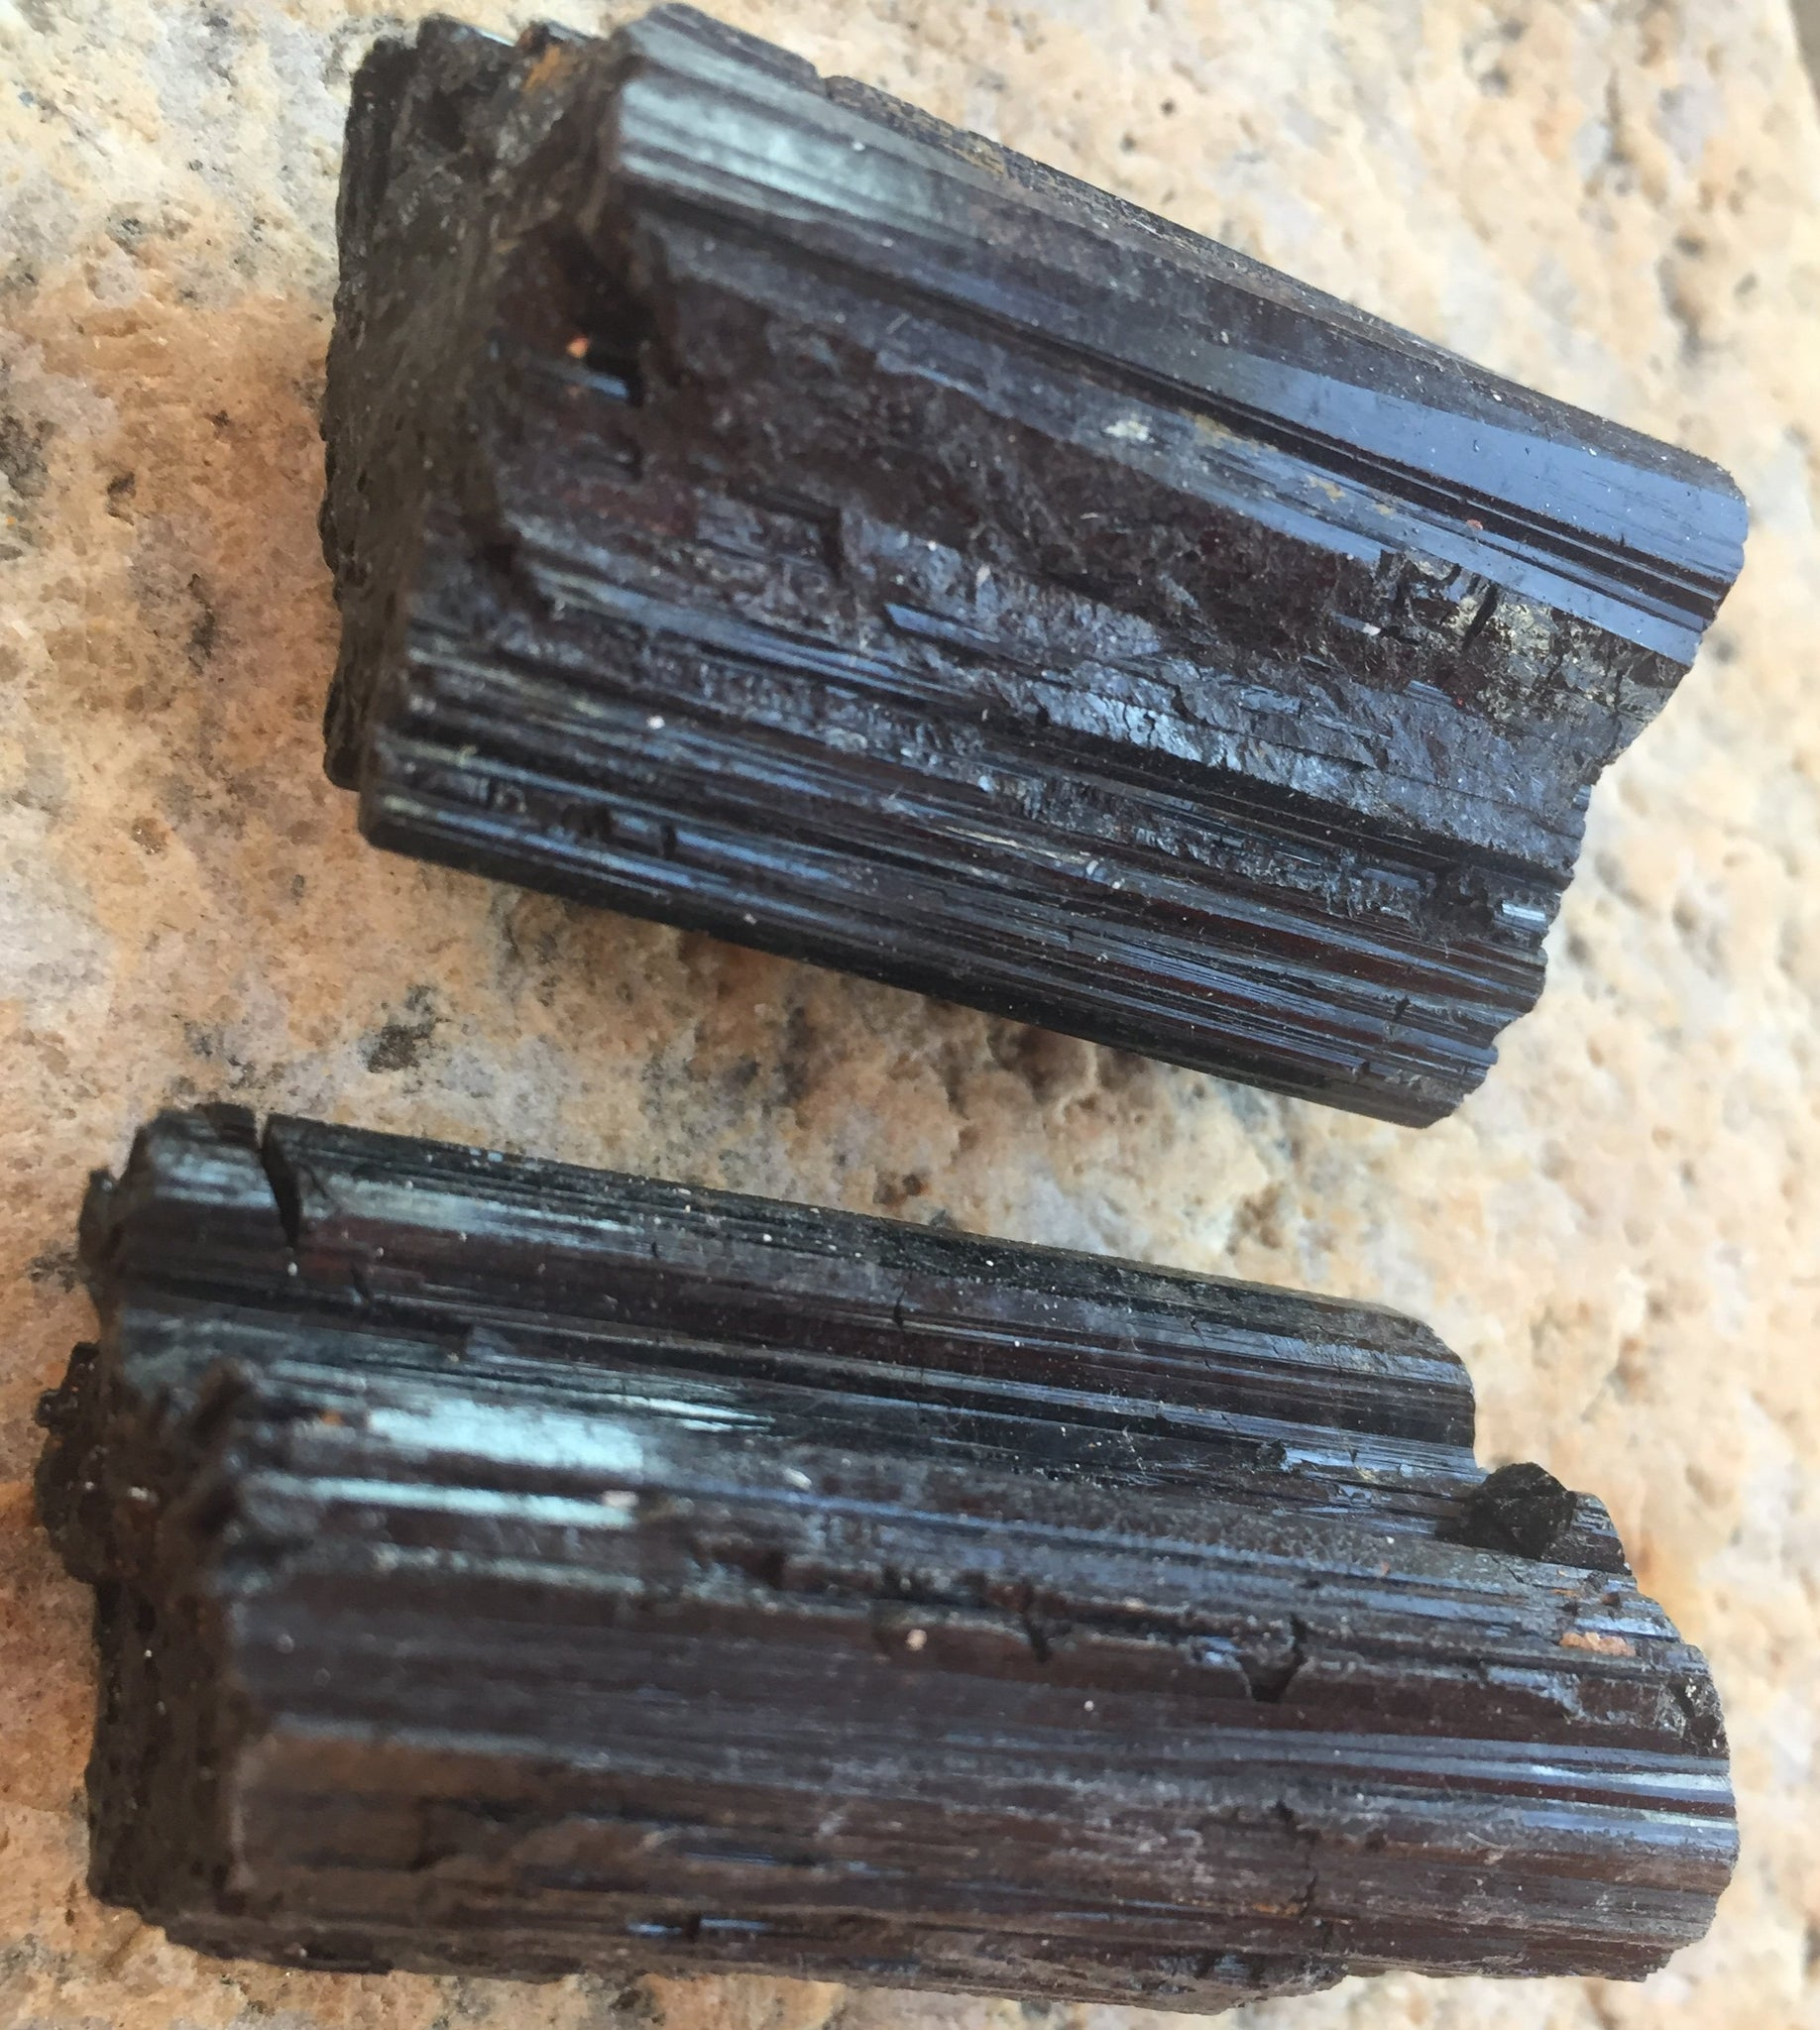 Raw Brazilian Black Tourmaline Crystal Healing Set for Transmutation of Lower Vibrations & Reestablishing Harmony in Body, Mind & Spirit